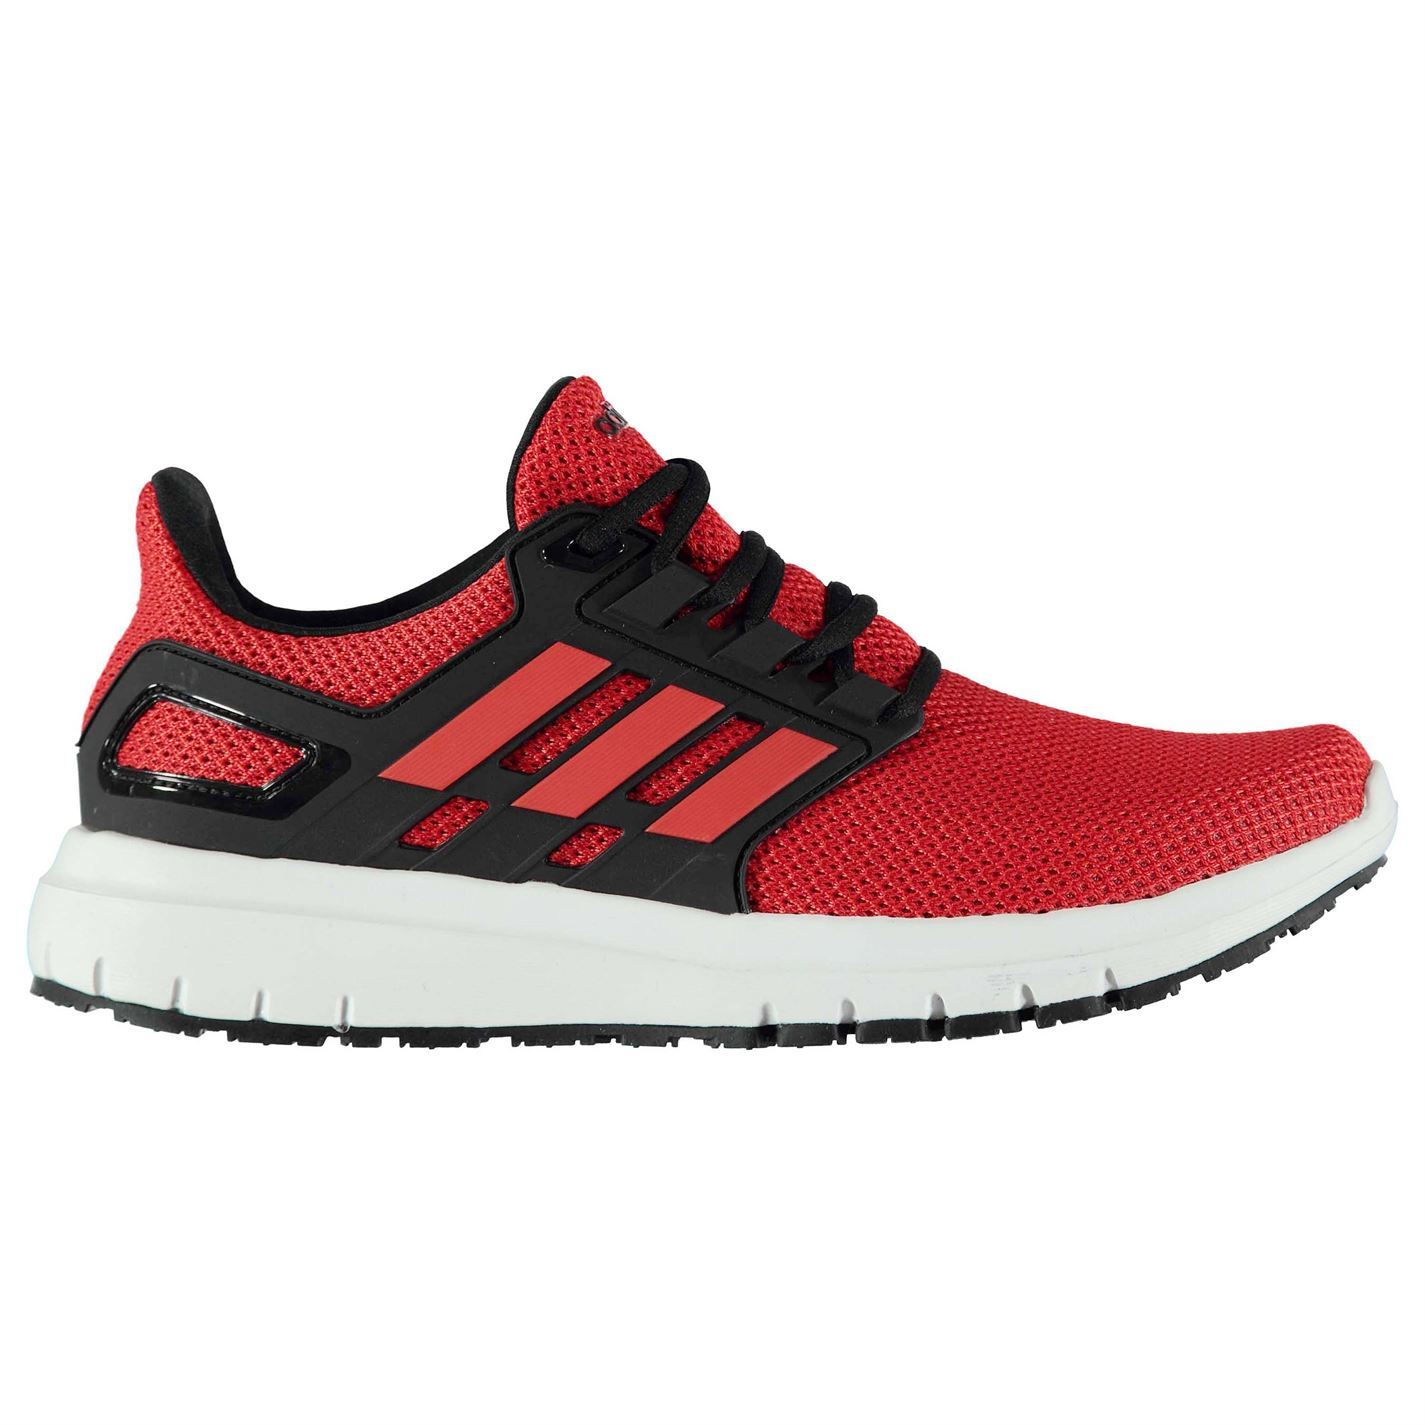 the best attitude 53b31 61fb2 ... adidas Energy Cloud 2 Running Shoes Mens RedBlackWht Jogging Trainers  Sneakers ...